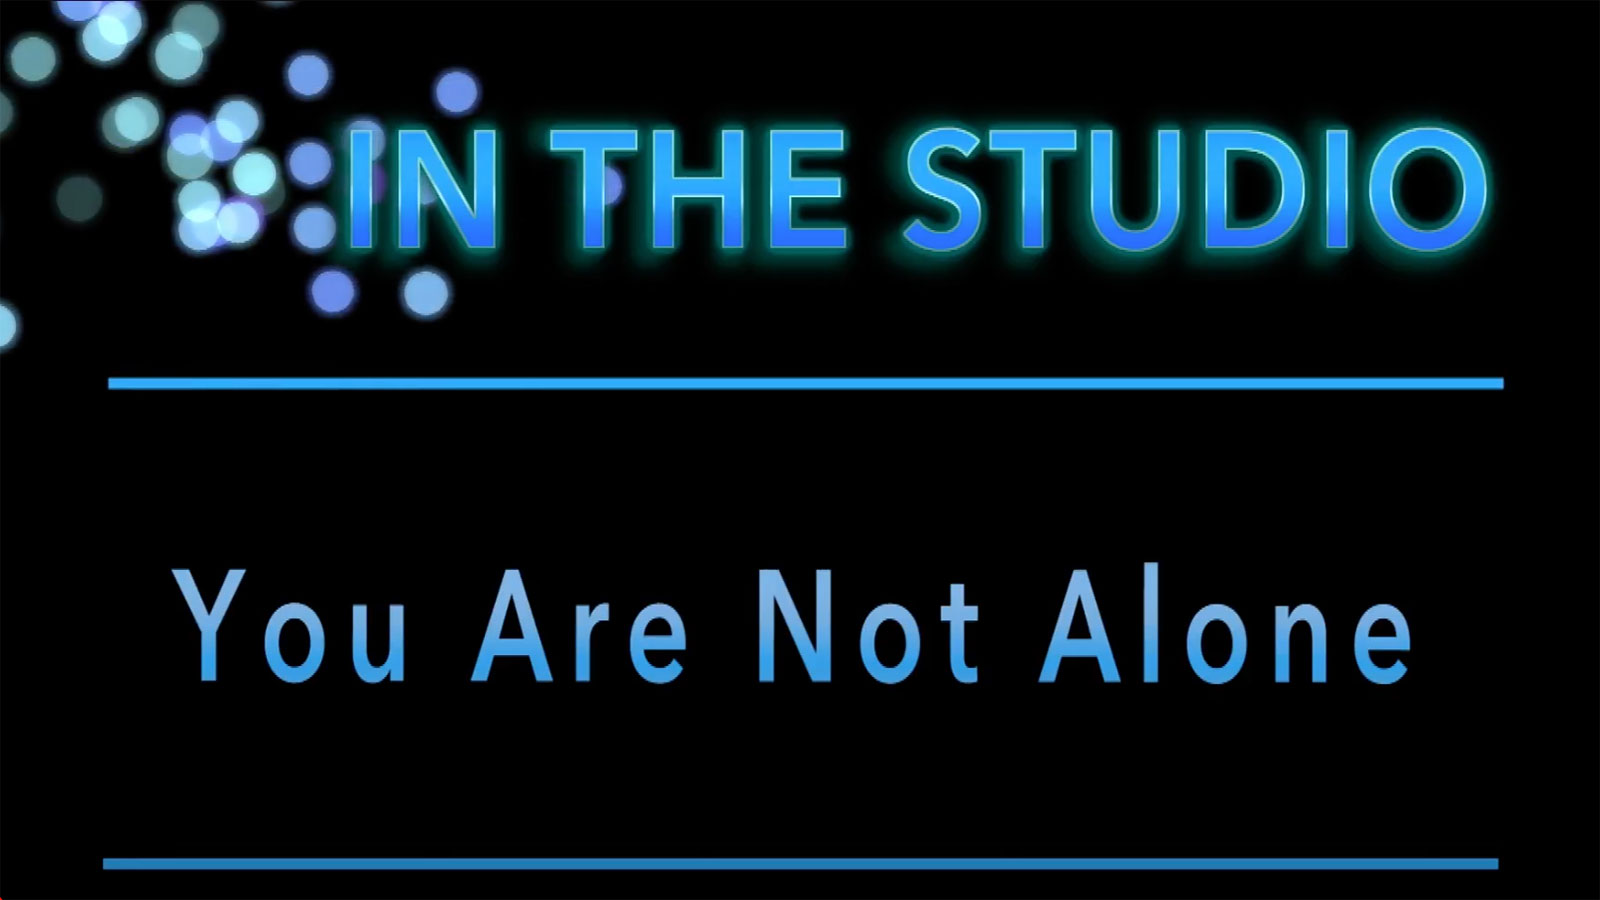 In the Studio: You Are Not Alone